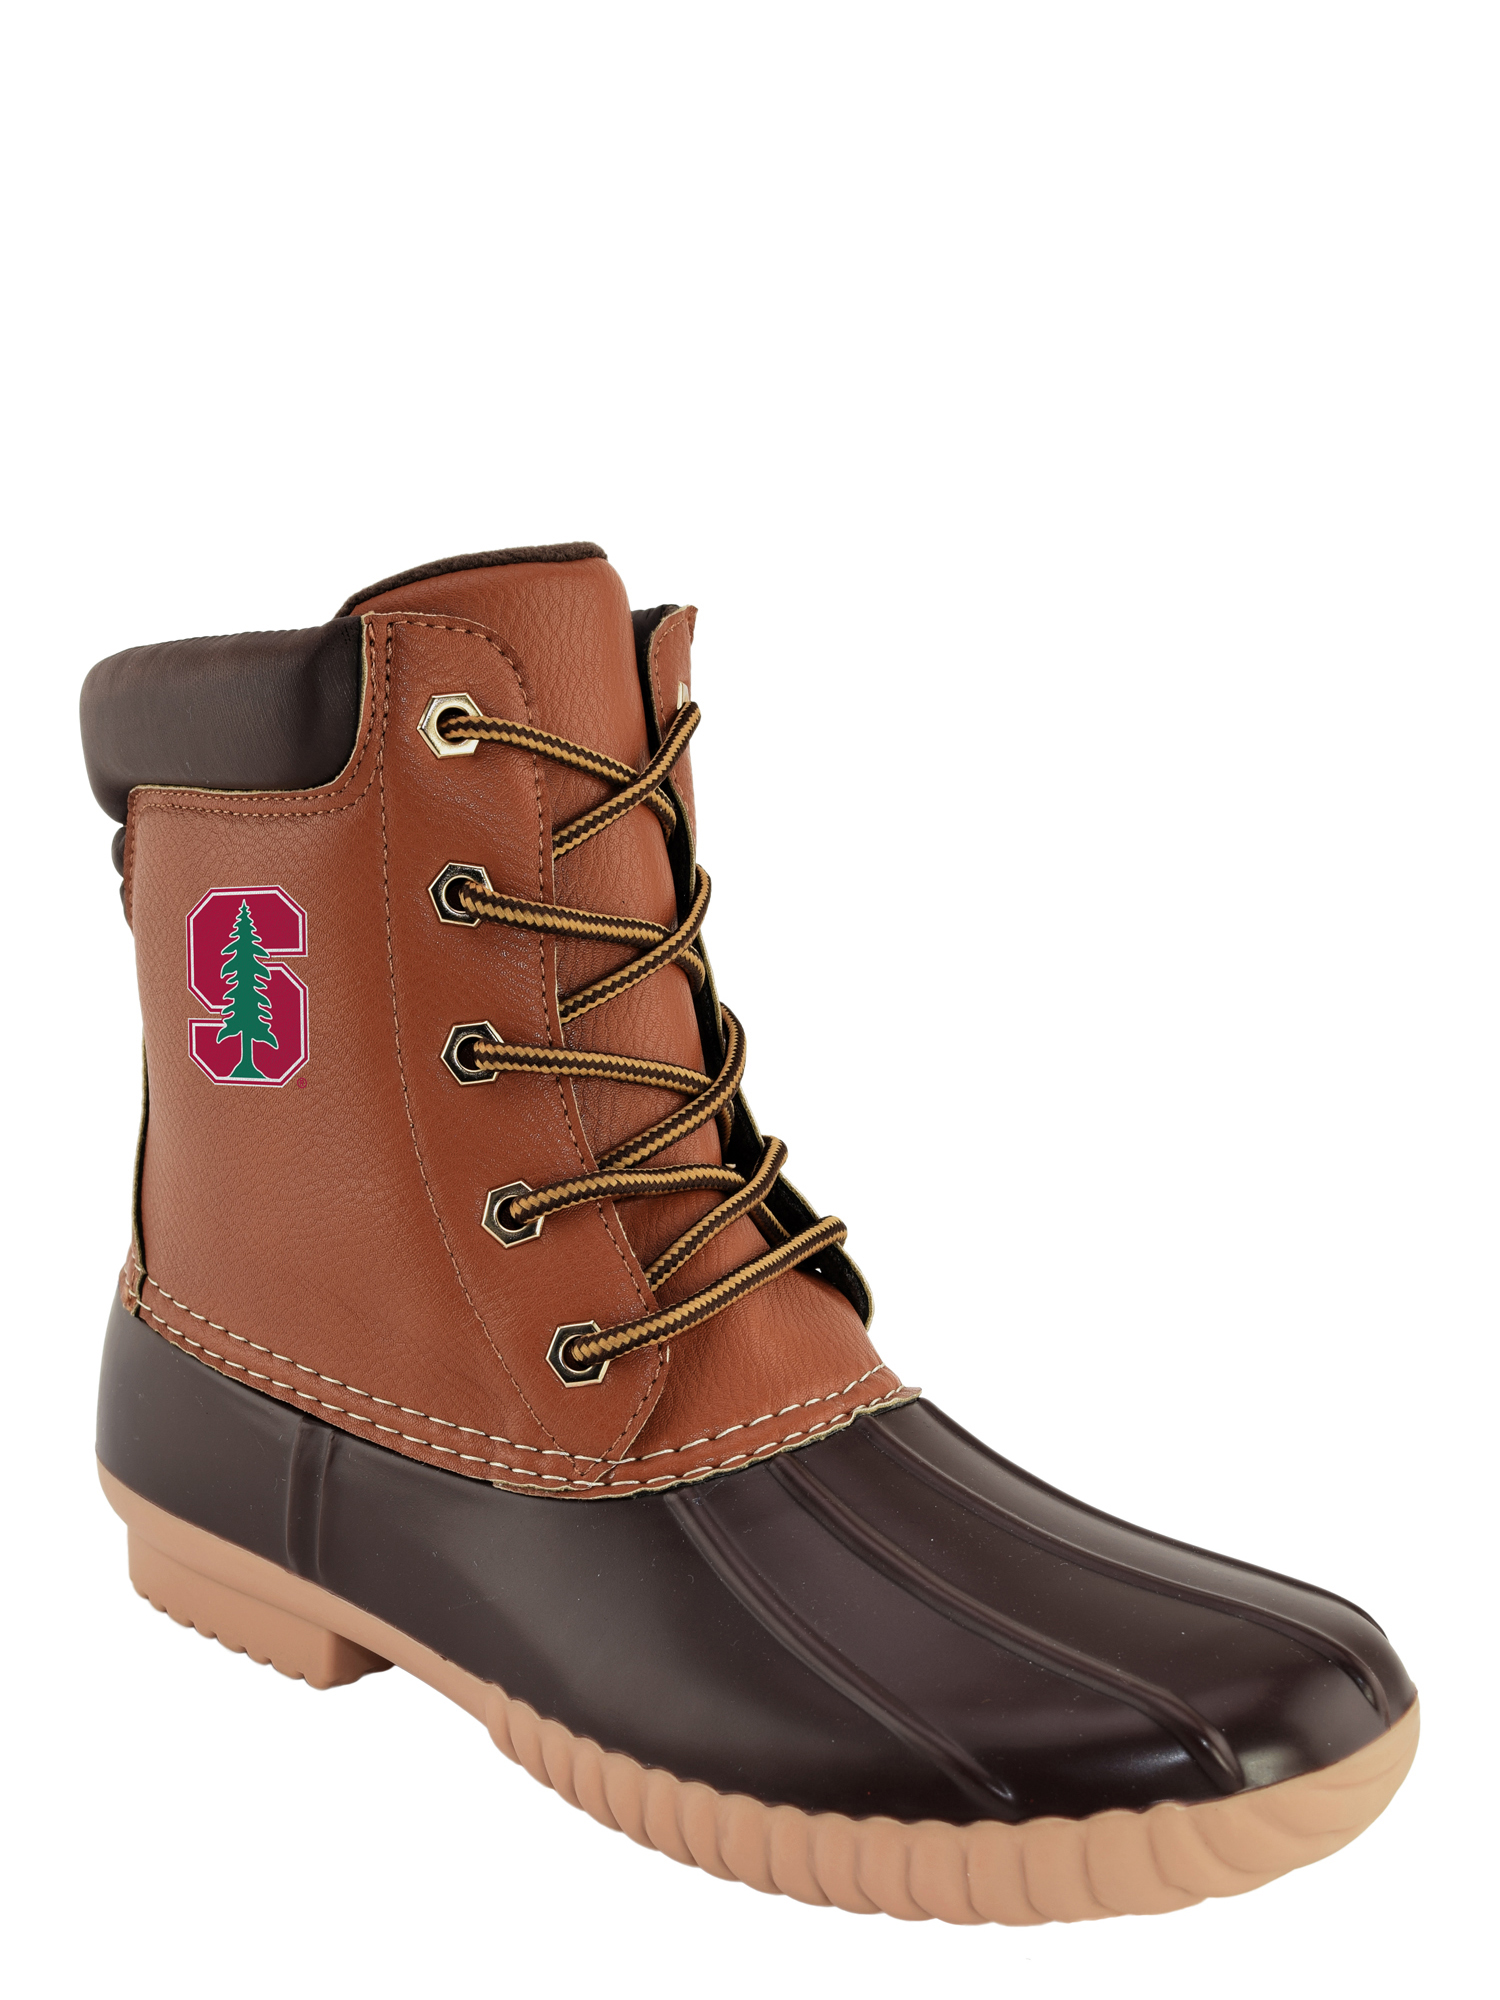 NCAA Men's Stanford -Duck Boot Economical, stylish, and eye-catching shoes